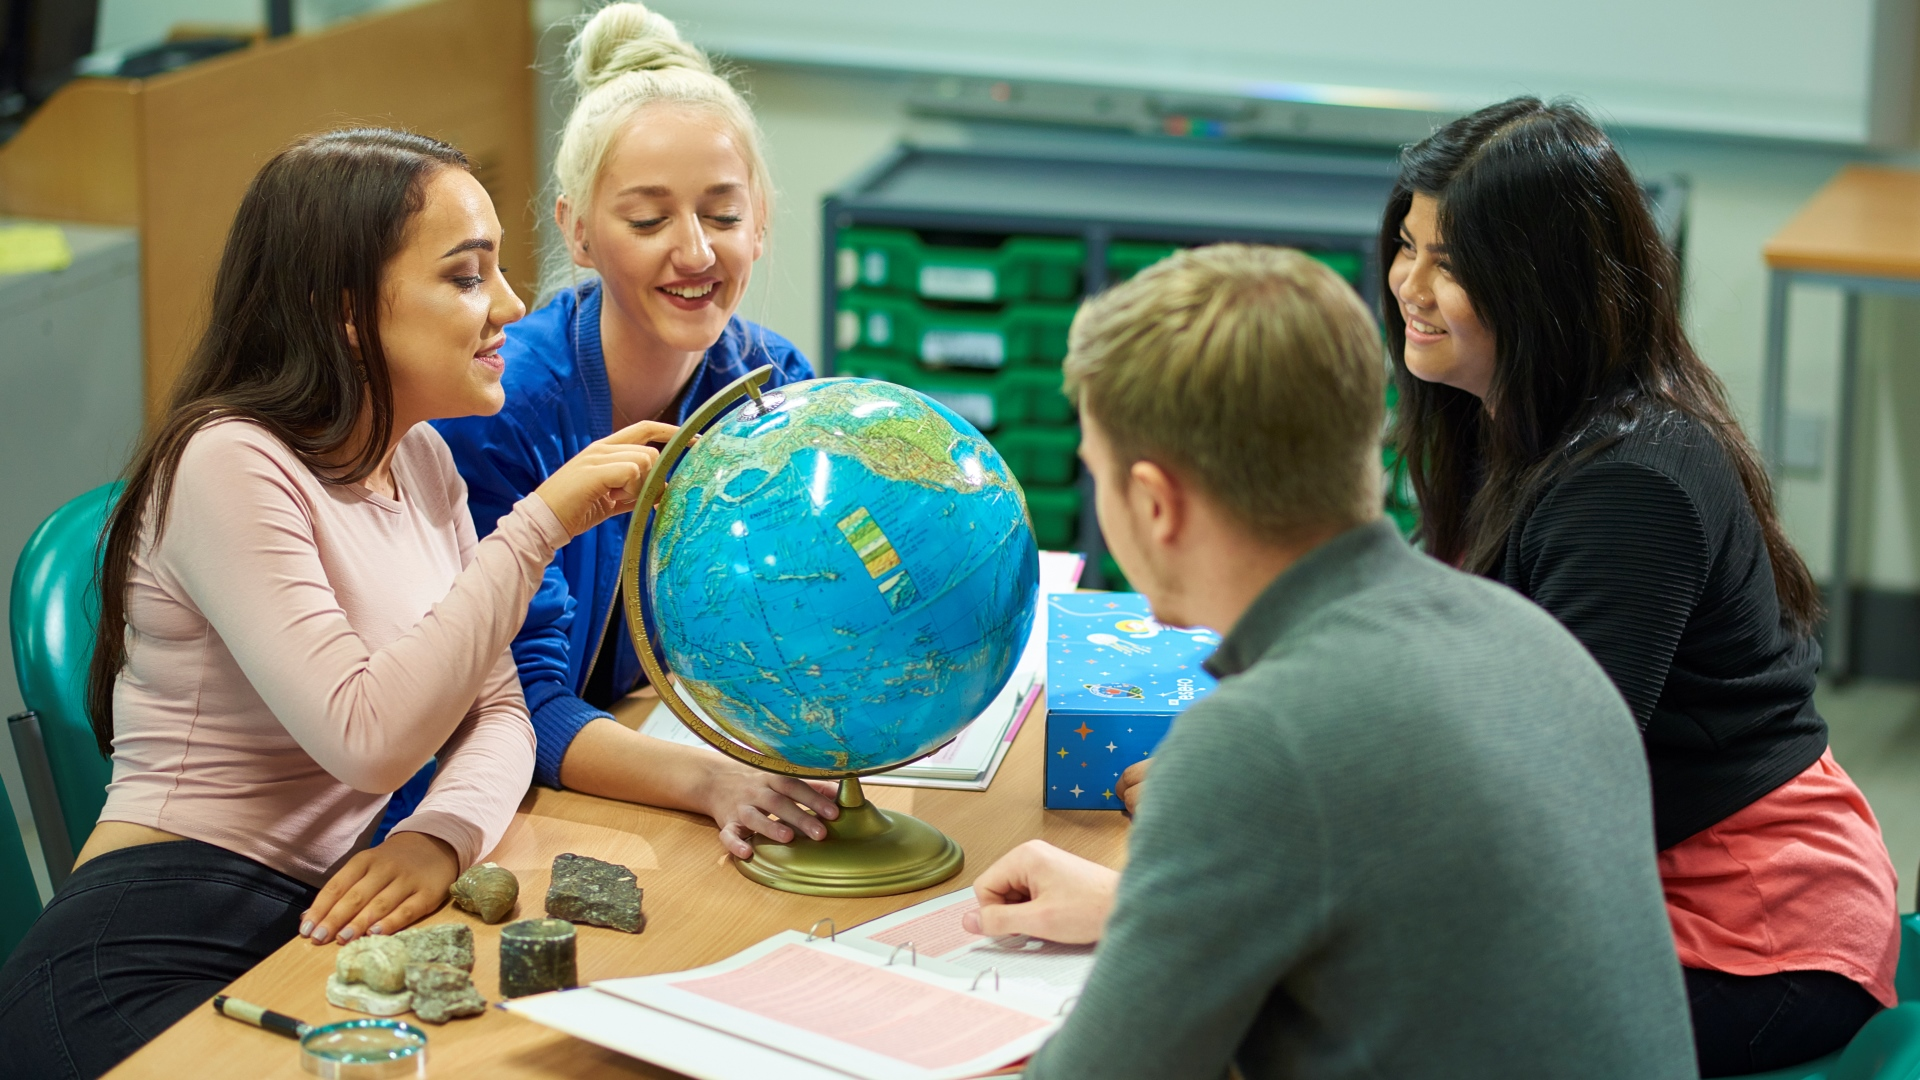 What are the Best Topics to Study with Geography?